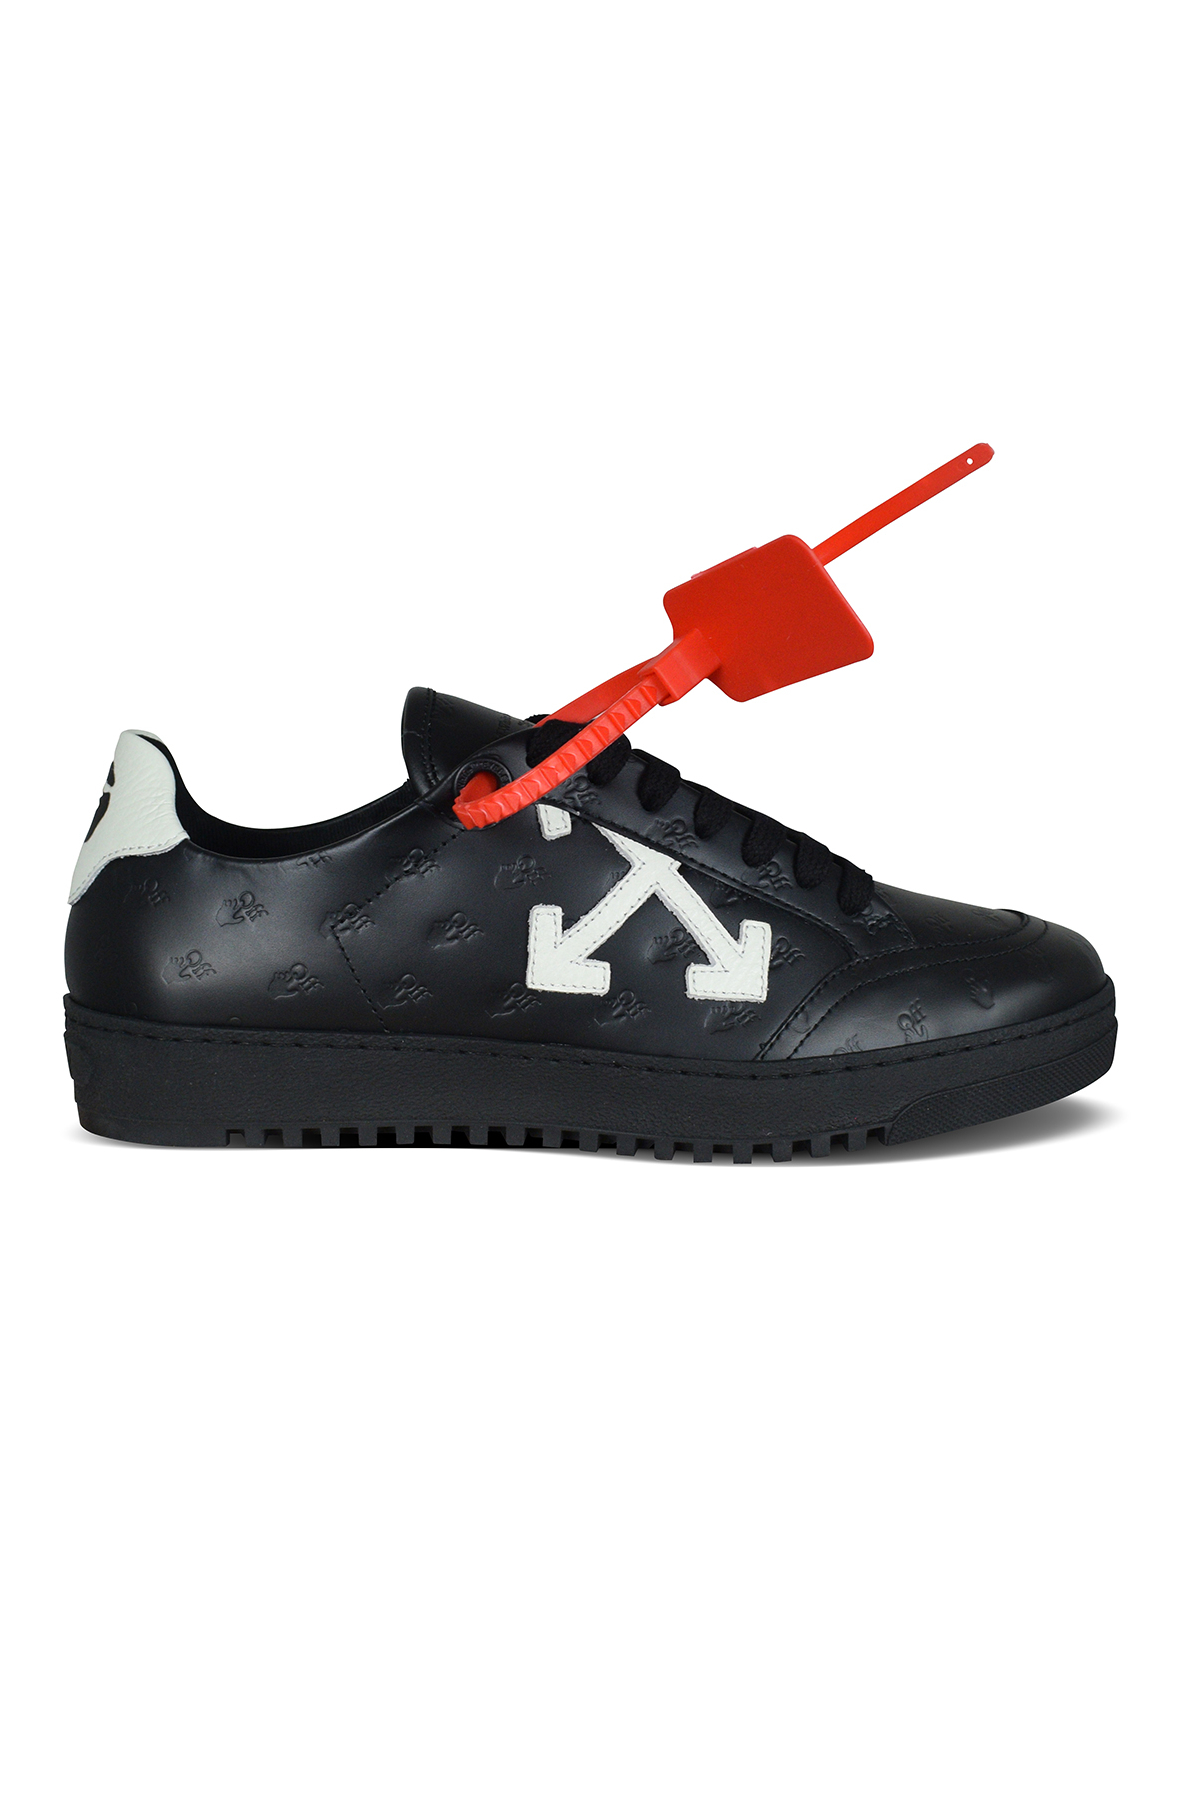 Low Vulcanized Off-White sneakers in black leather with embossed logo.